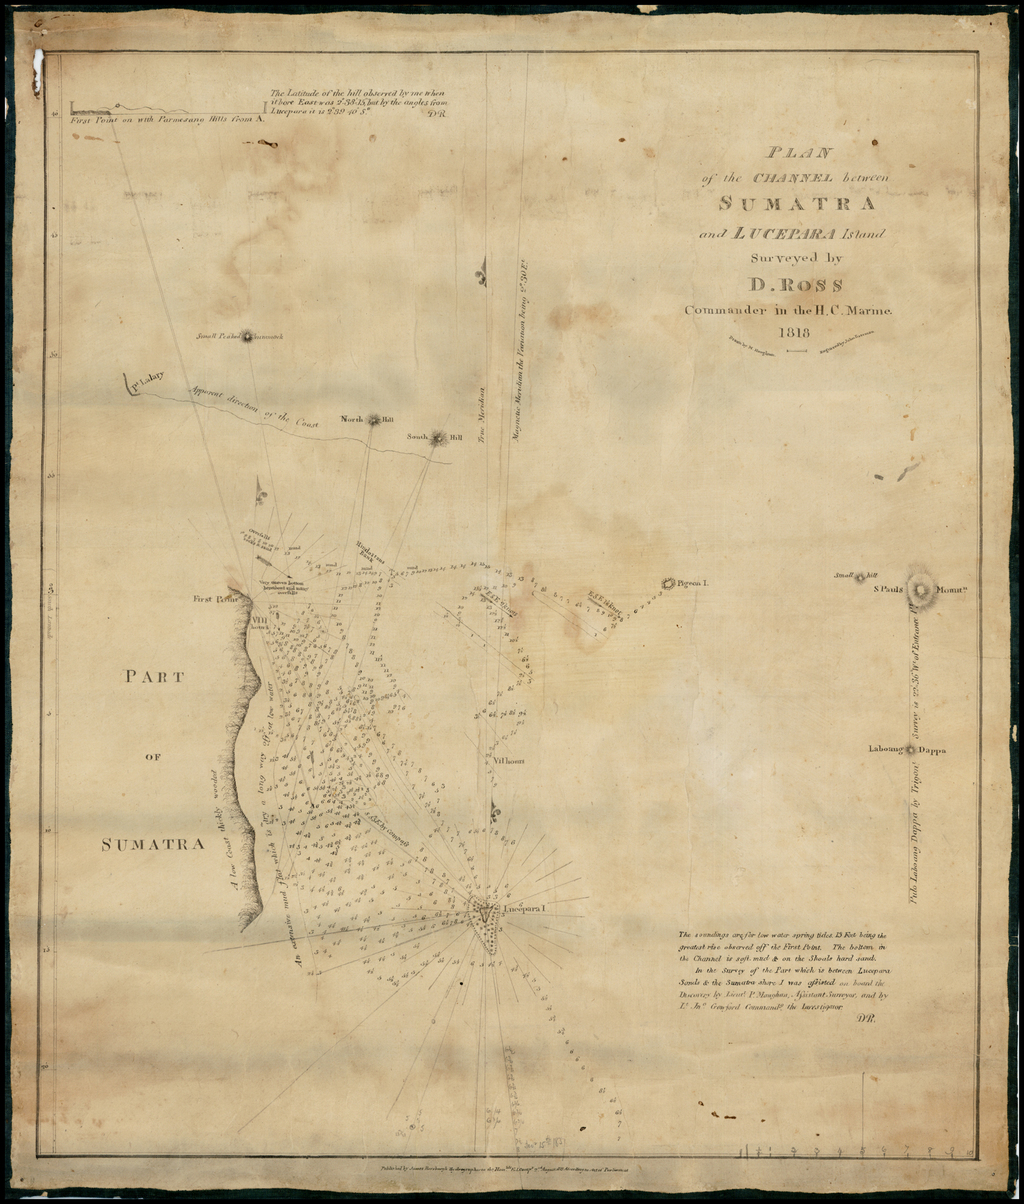 Plan of the Channel between Sumatra and Lucepara Island Surveyed by D. Ross  Commander in the H.C. Marine.  1818.  Drawn by M. Houghton.  Engraved by John Bateman By Daniel Ross